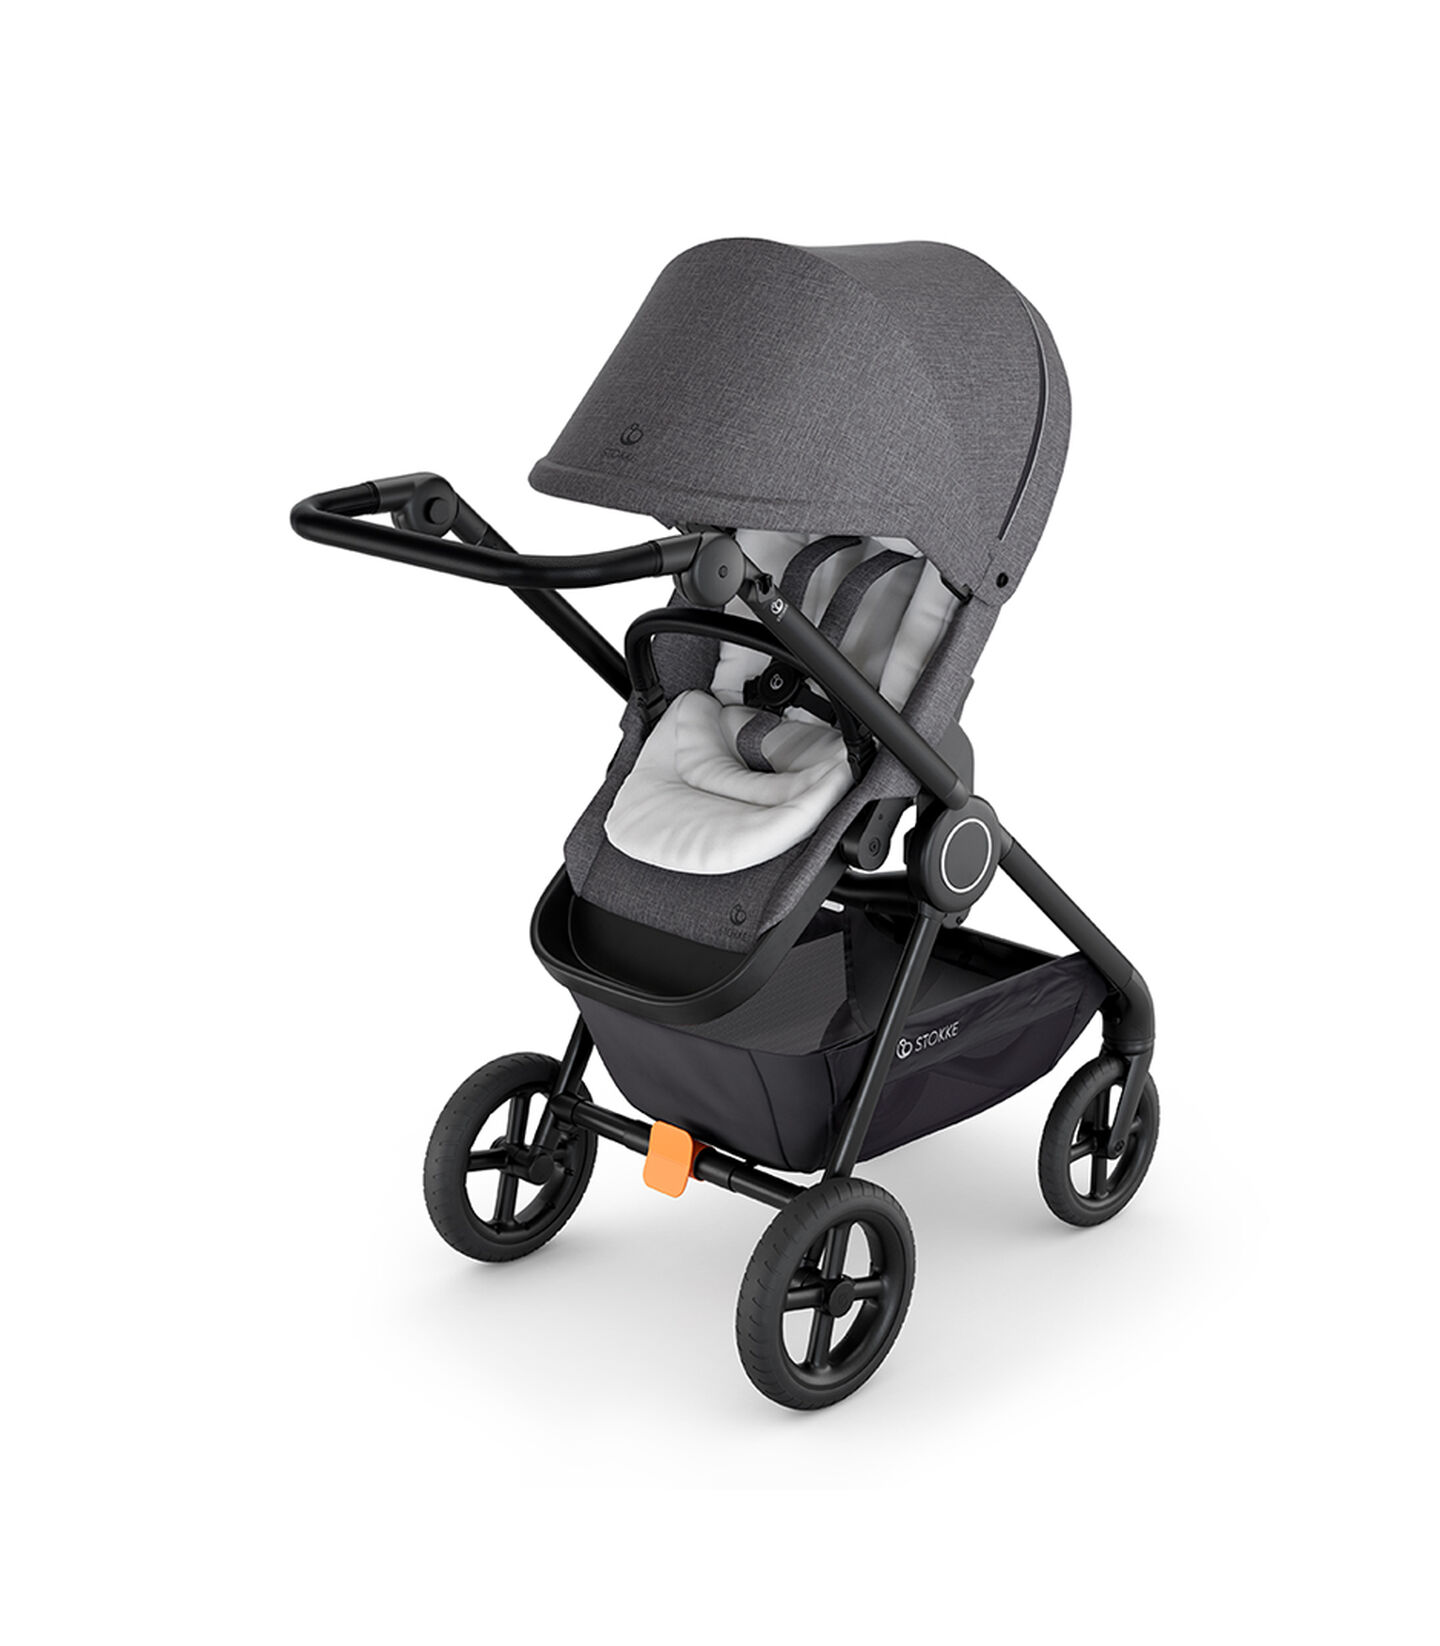 Stokke® Stroller Infant Insert, , mainview view 2